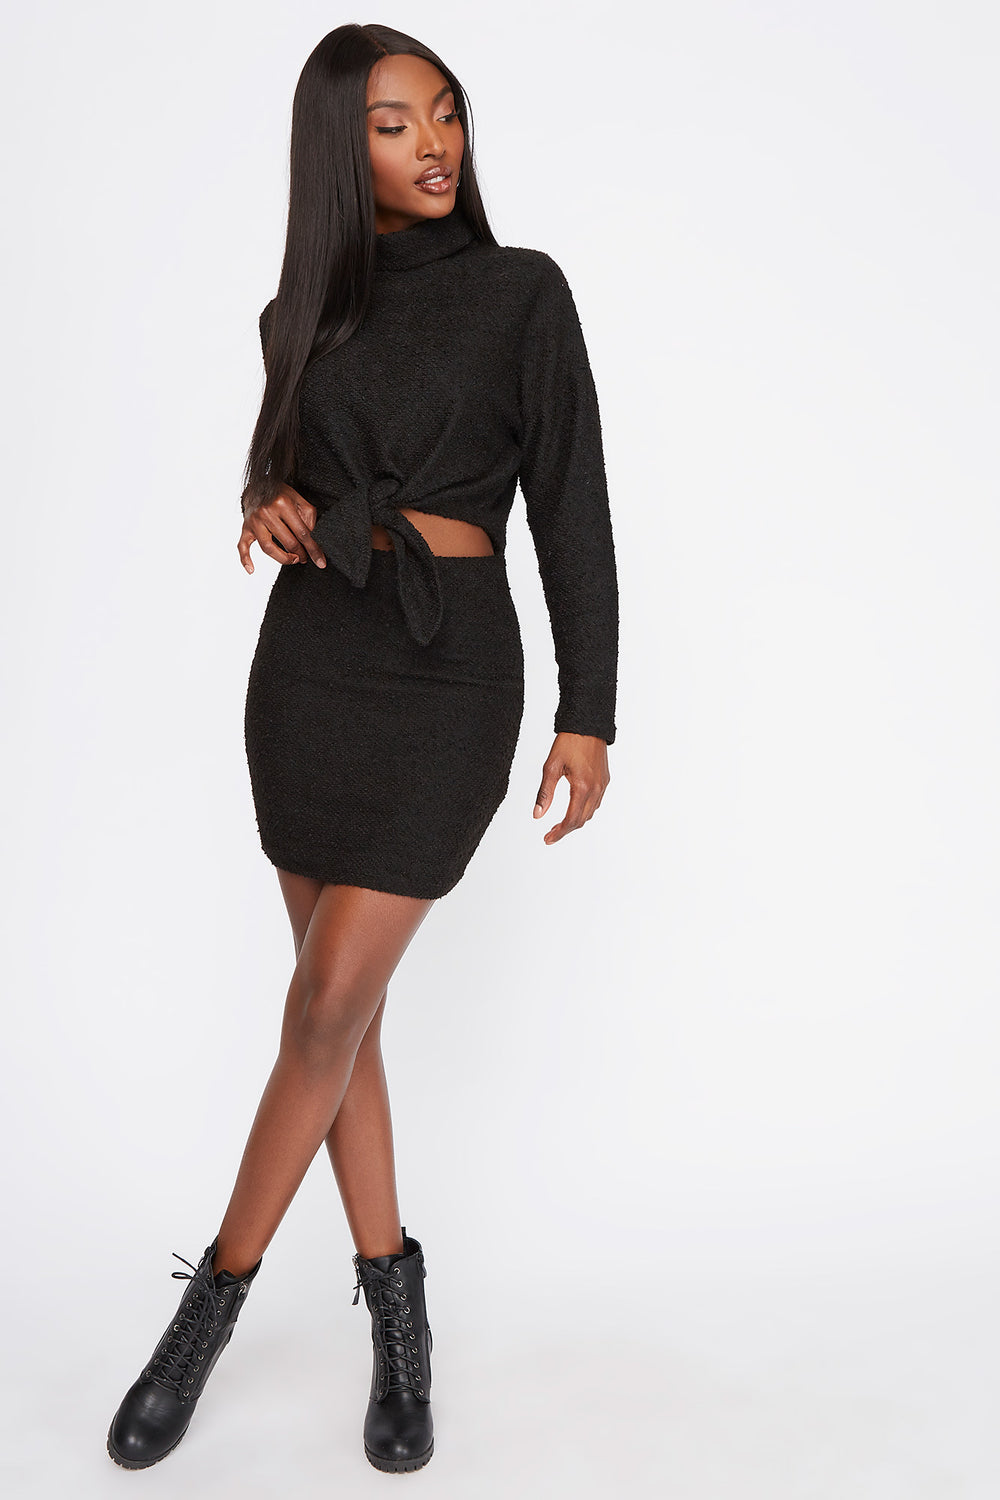 Textured Knit Mini Skirt Black